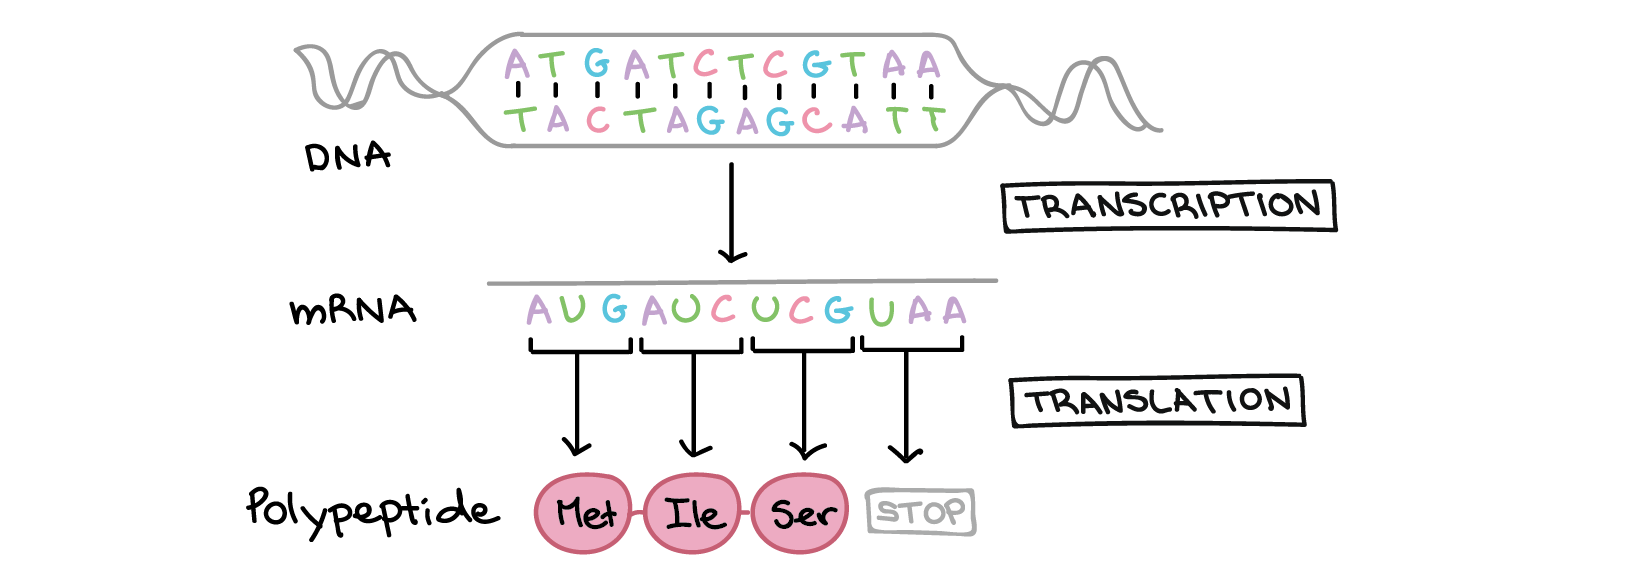 Intro To Gene Expression Central Dogma Article Khan Academy Translated Schematics Here